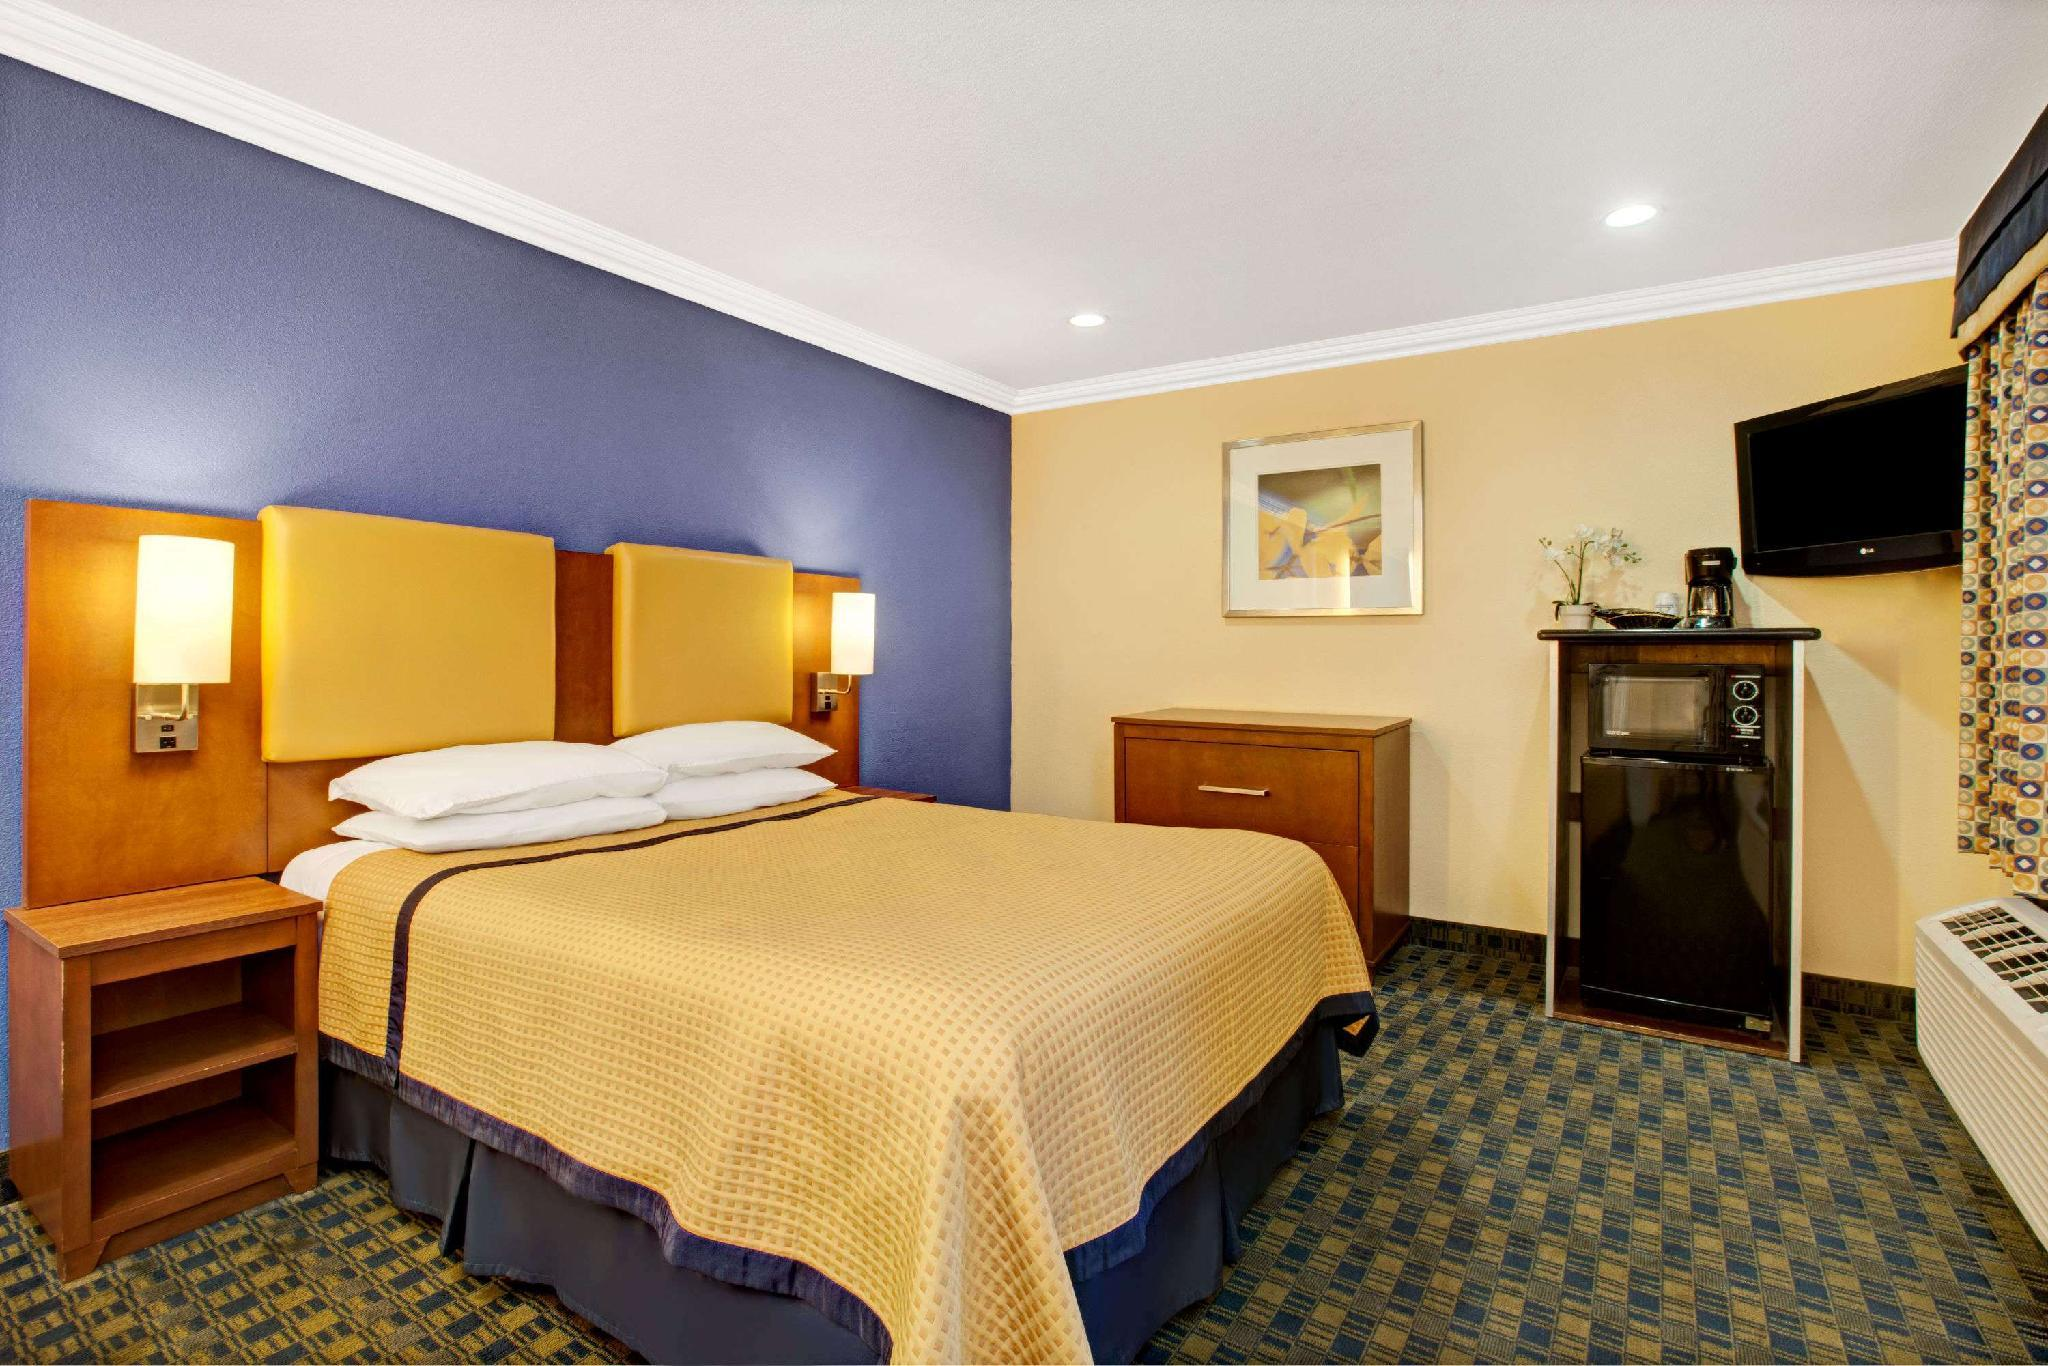 1 Queen Bed, Mobility/Hearing Impaired Accessible Room, Non-Smoking